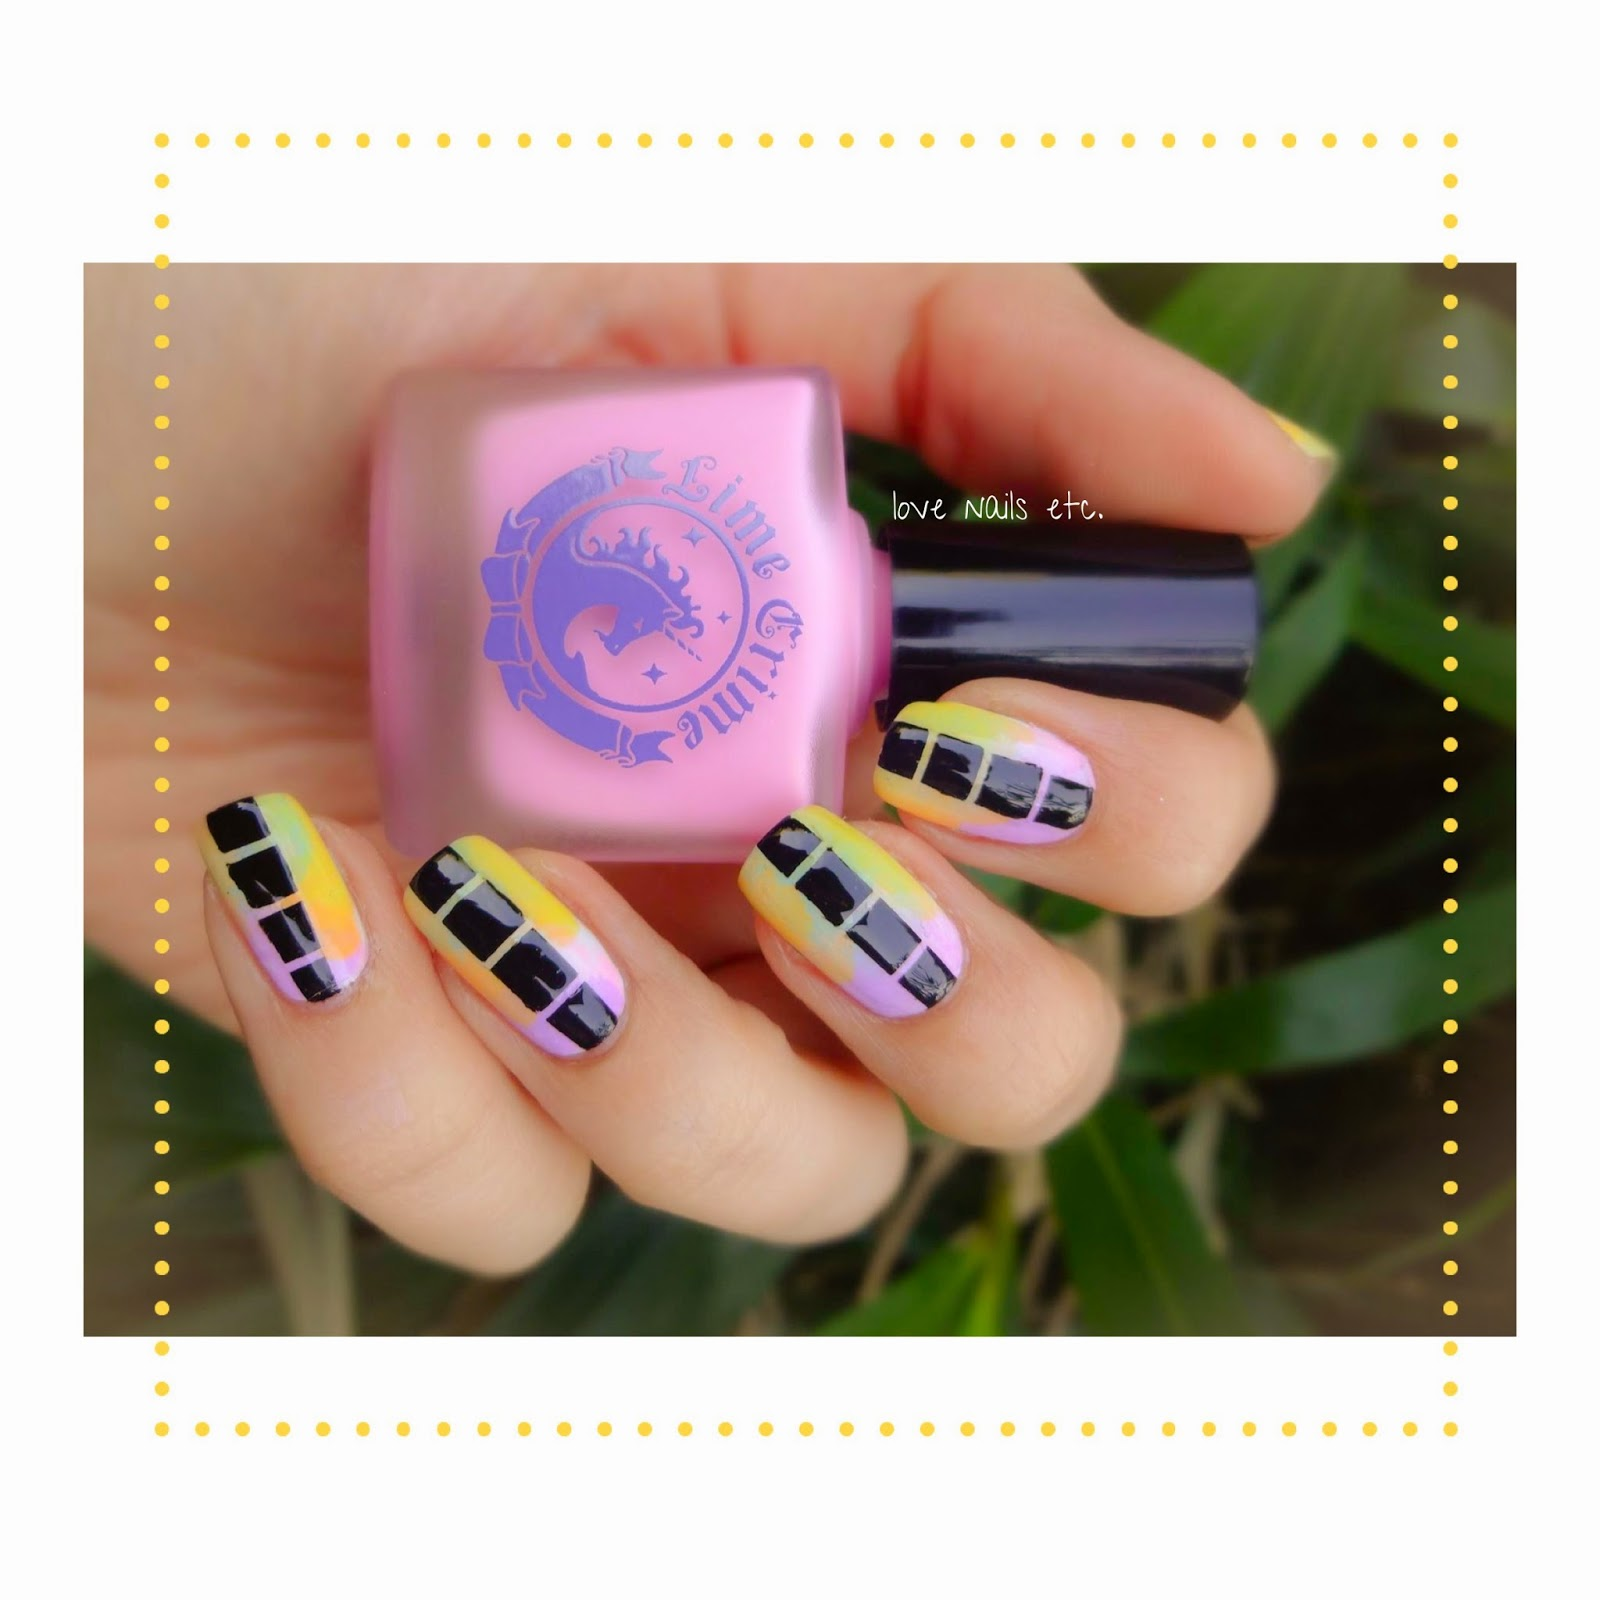 https://lovenailsetc.wordpress.com/2014/04/30/nail-art-ombre-aux-couleurs-de-printemps-lime-crime/